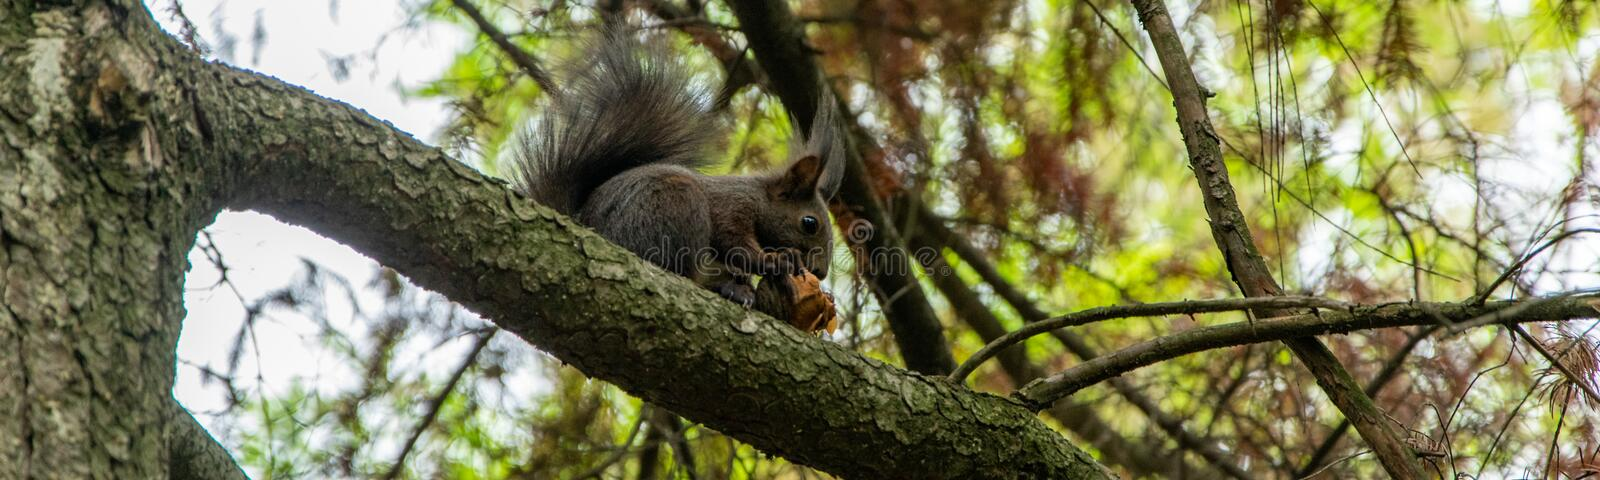 Cute little squirrel eating a hazelnut on the tree. Animals wildlife stock images